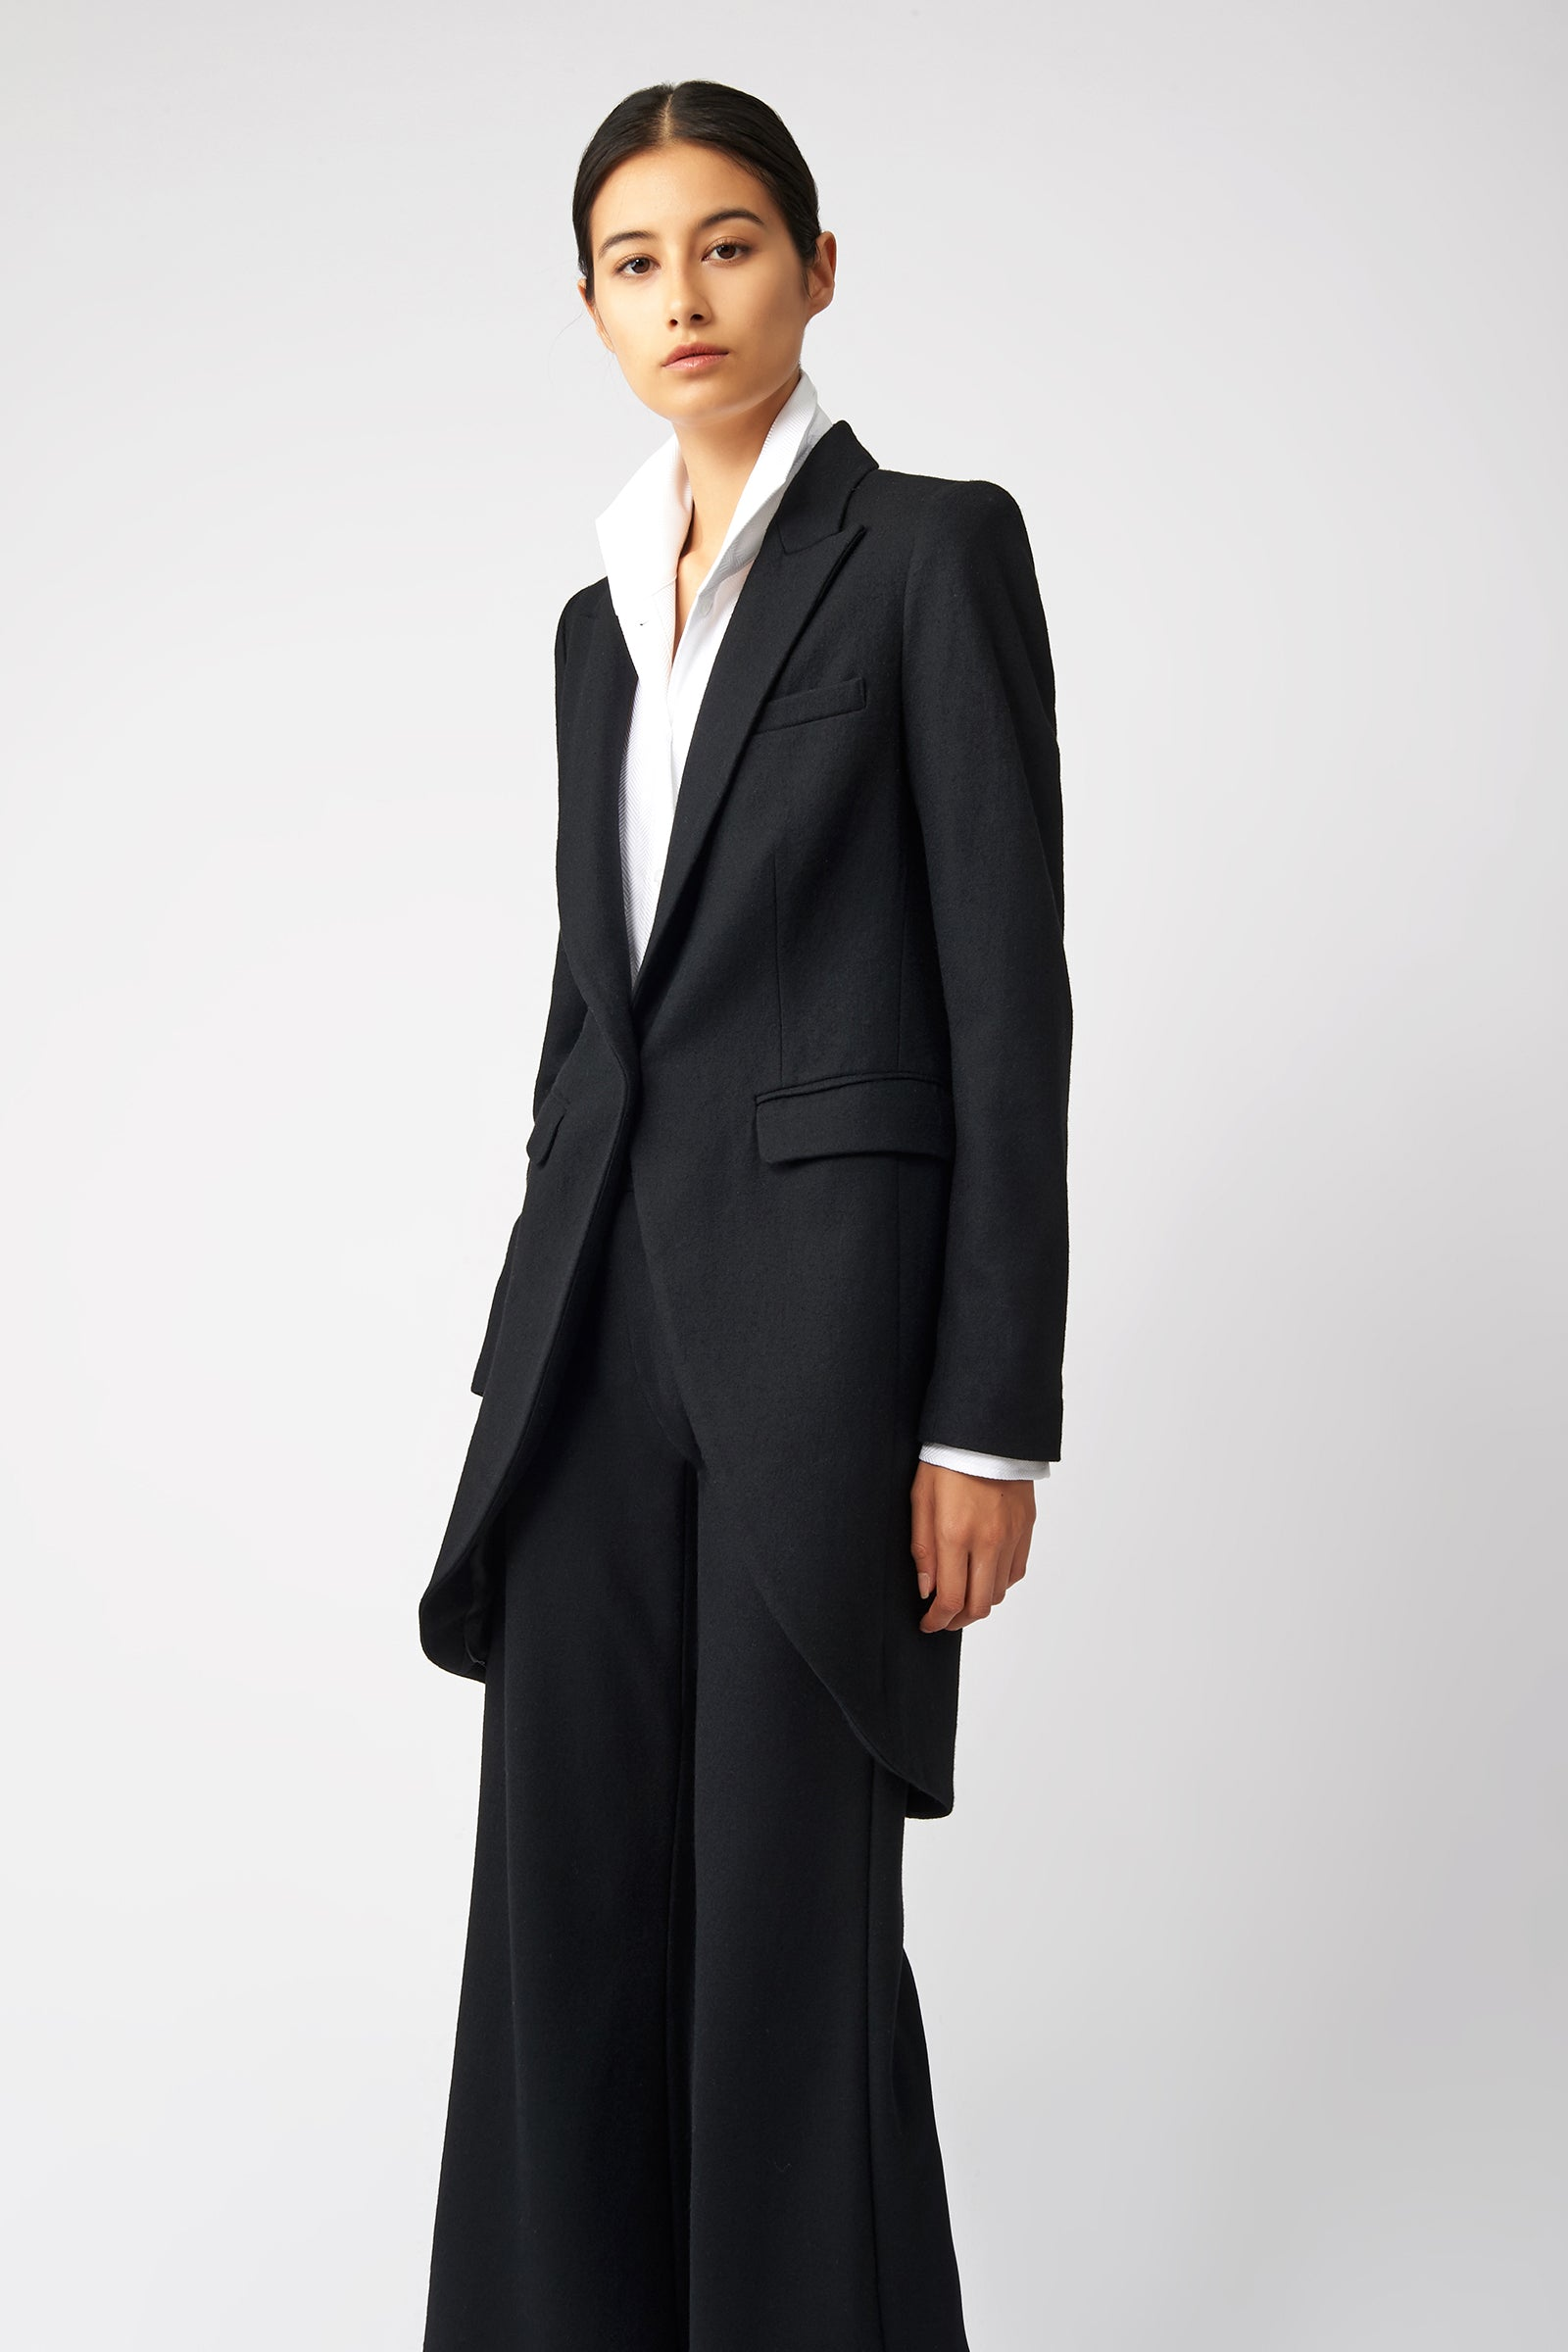 Kal Rieman Tailored Tux Blazer in Black on Model Side View